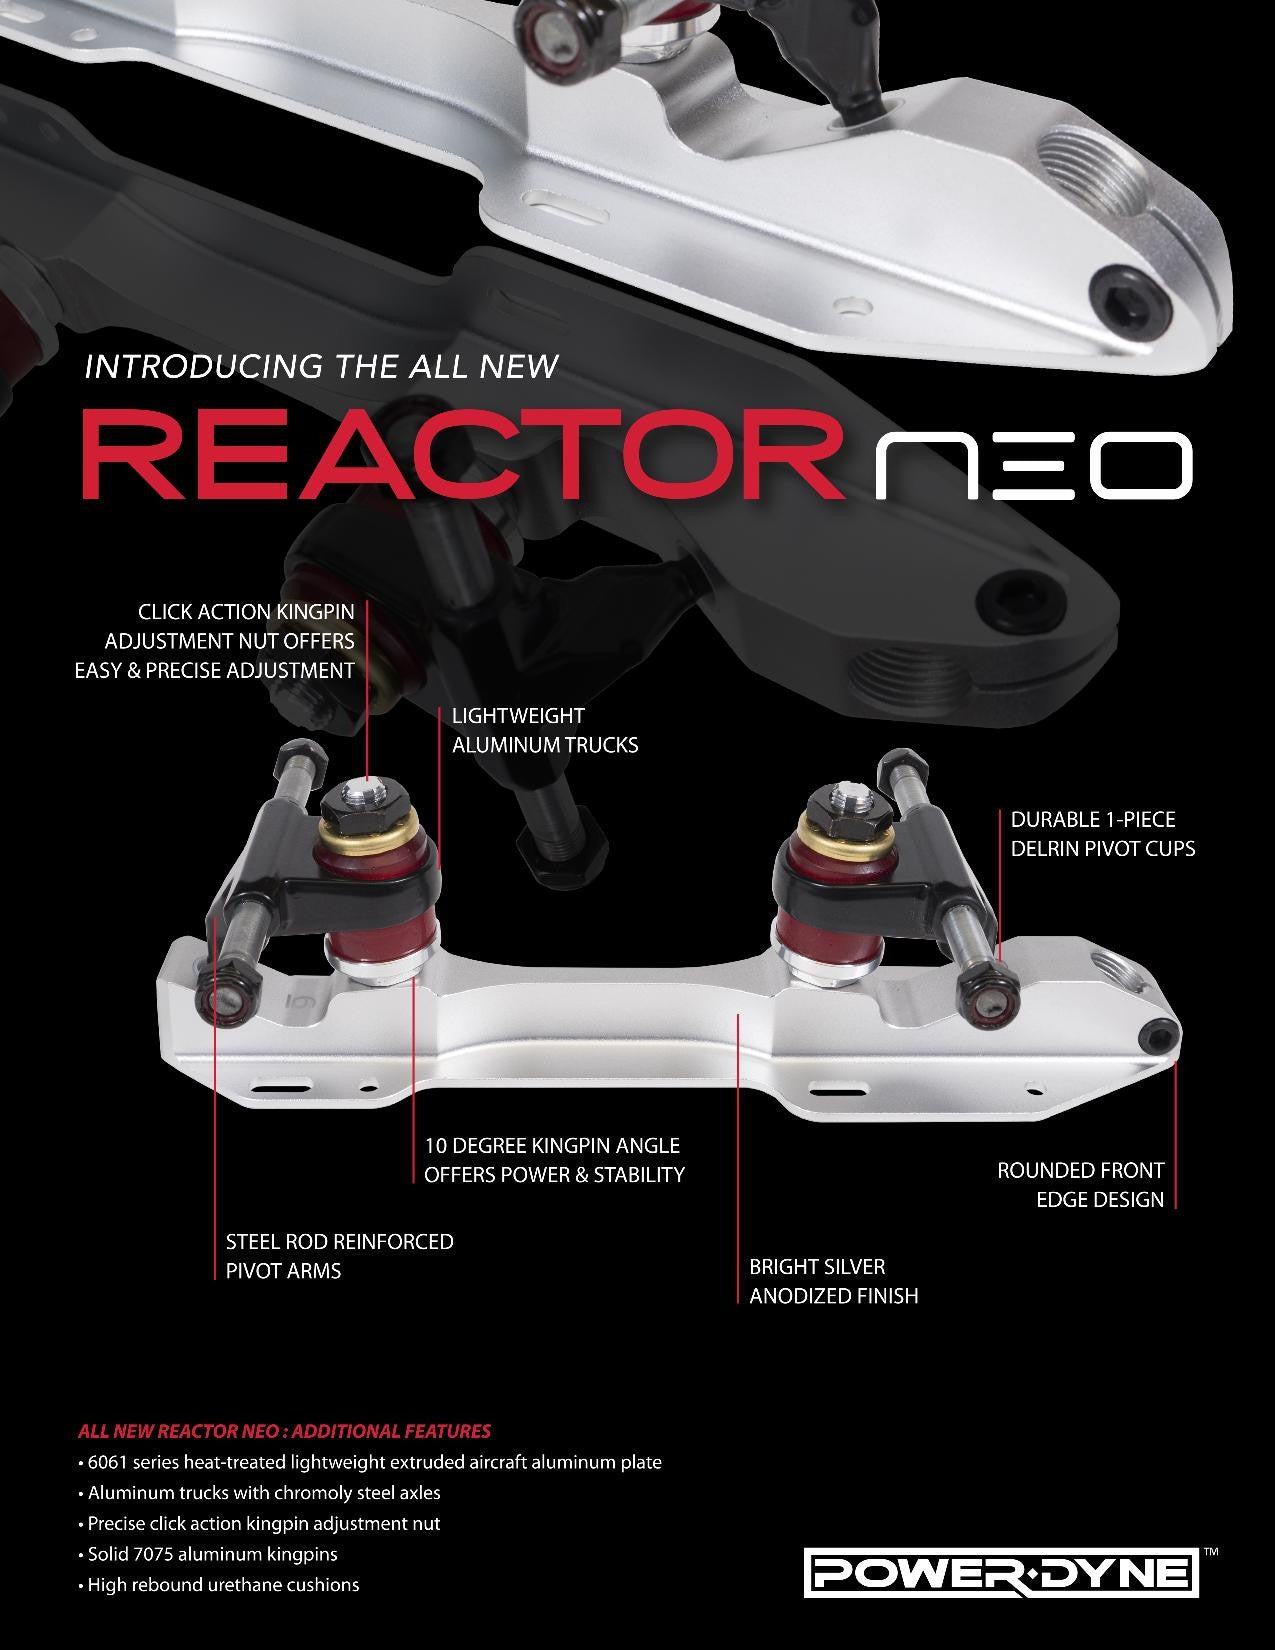 PowerDyne Reactor Neo